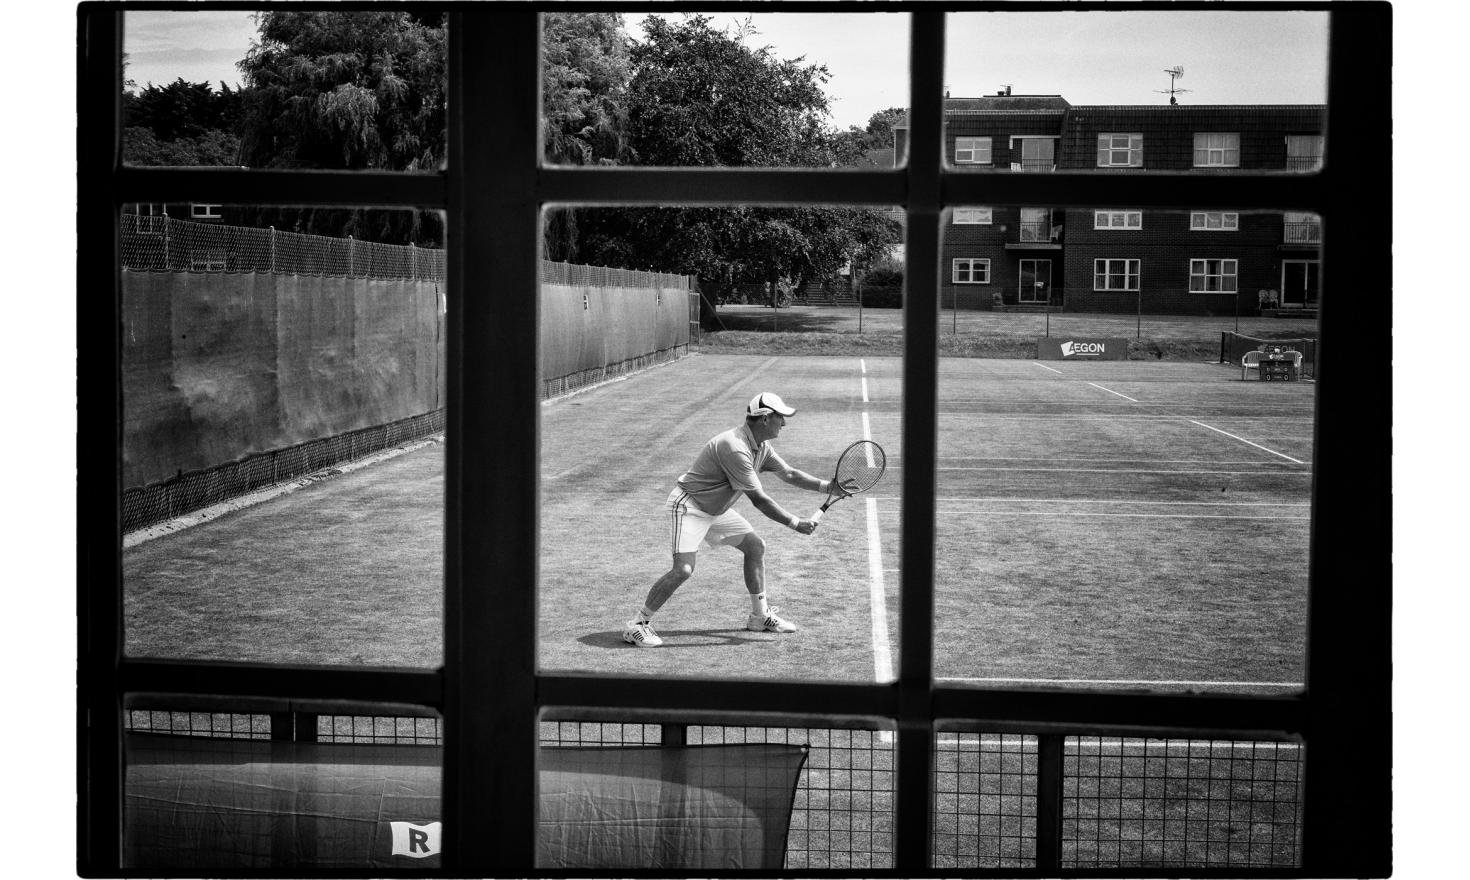 "Senoir final, tennis tounament in frinton, a very fancy toxn near Clacton. The Trending district has voted at 65% for the""leave""the EU. Frinton, England. July 2016"